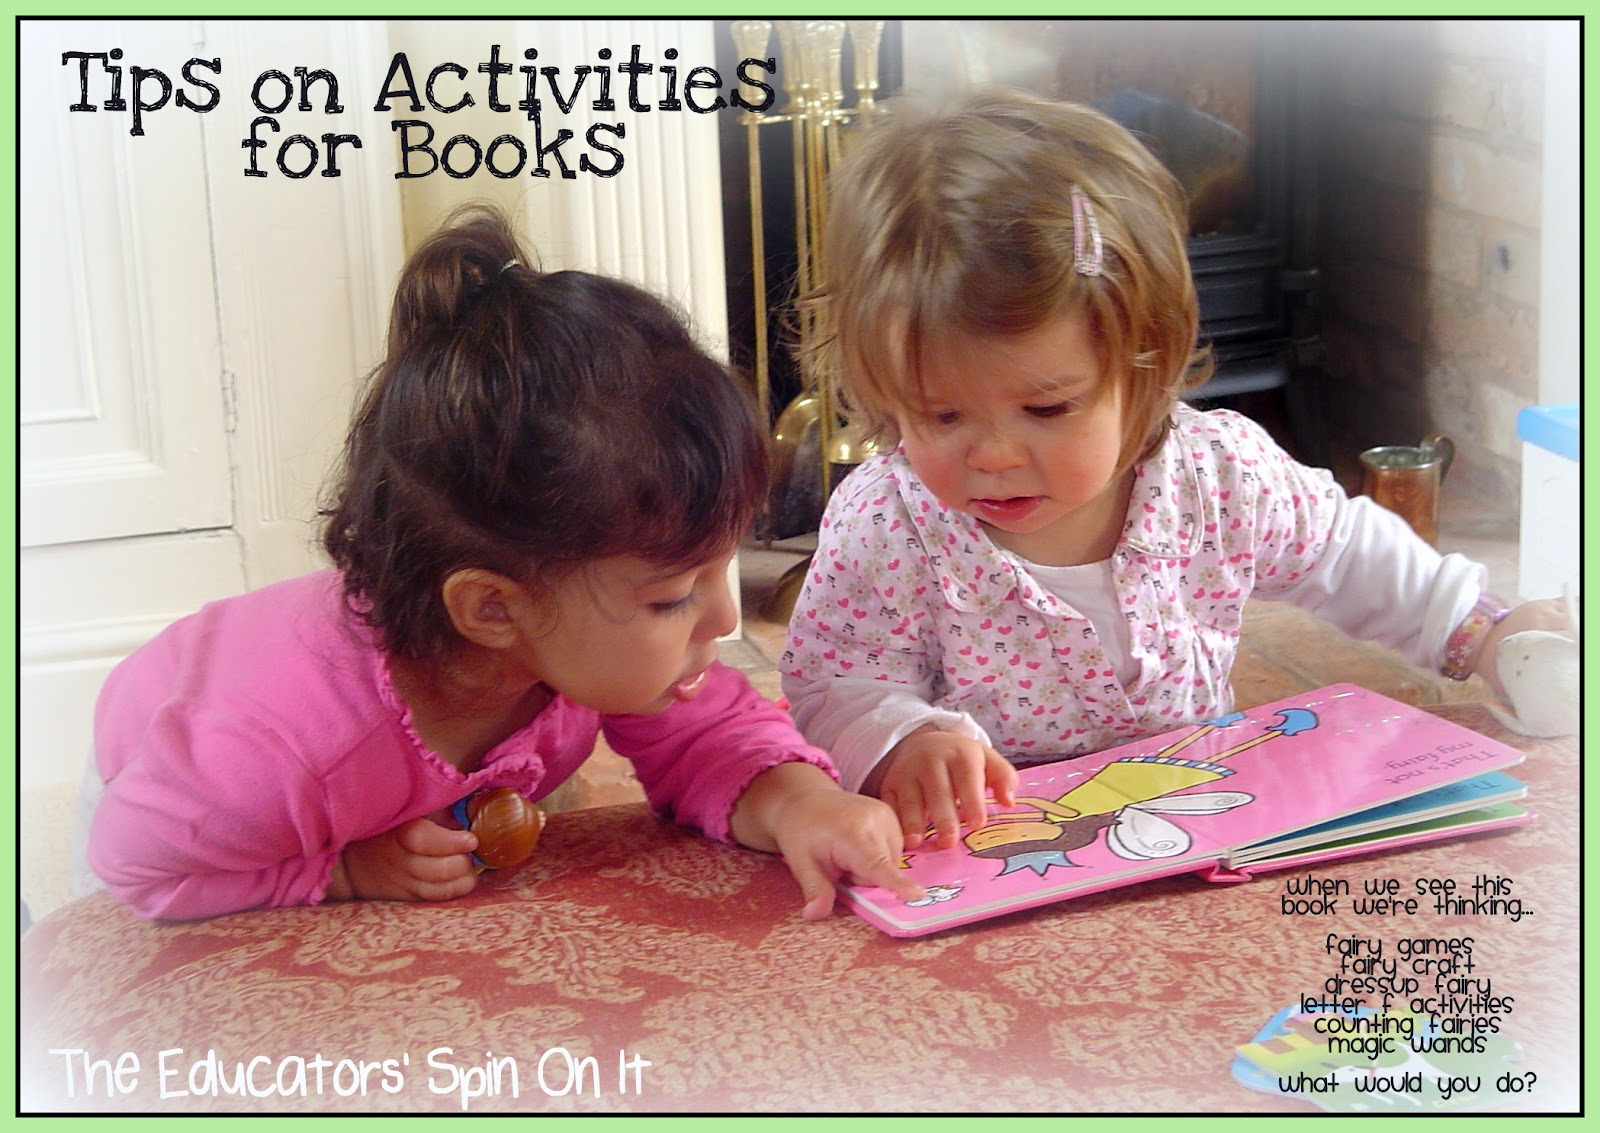 Tips and Activities for books